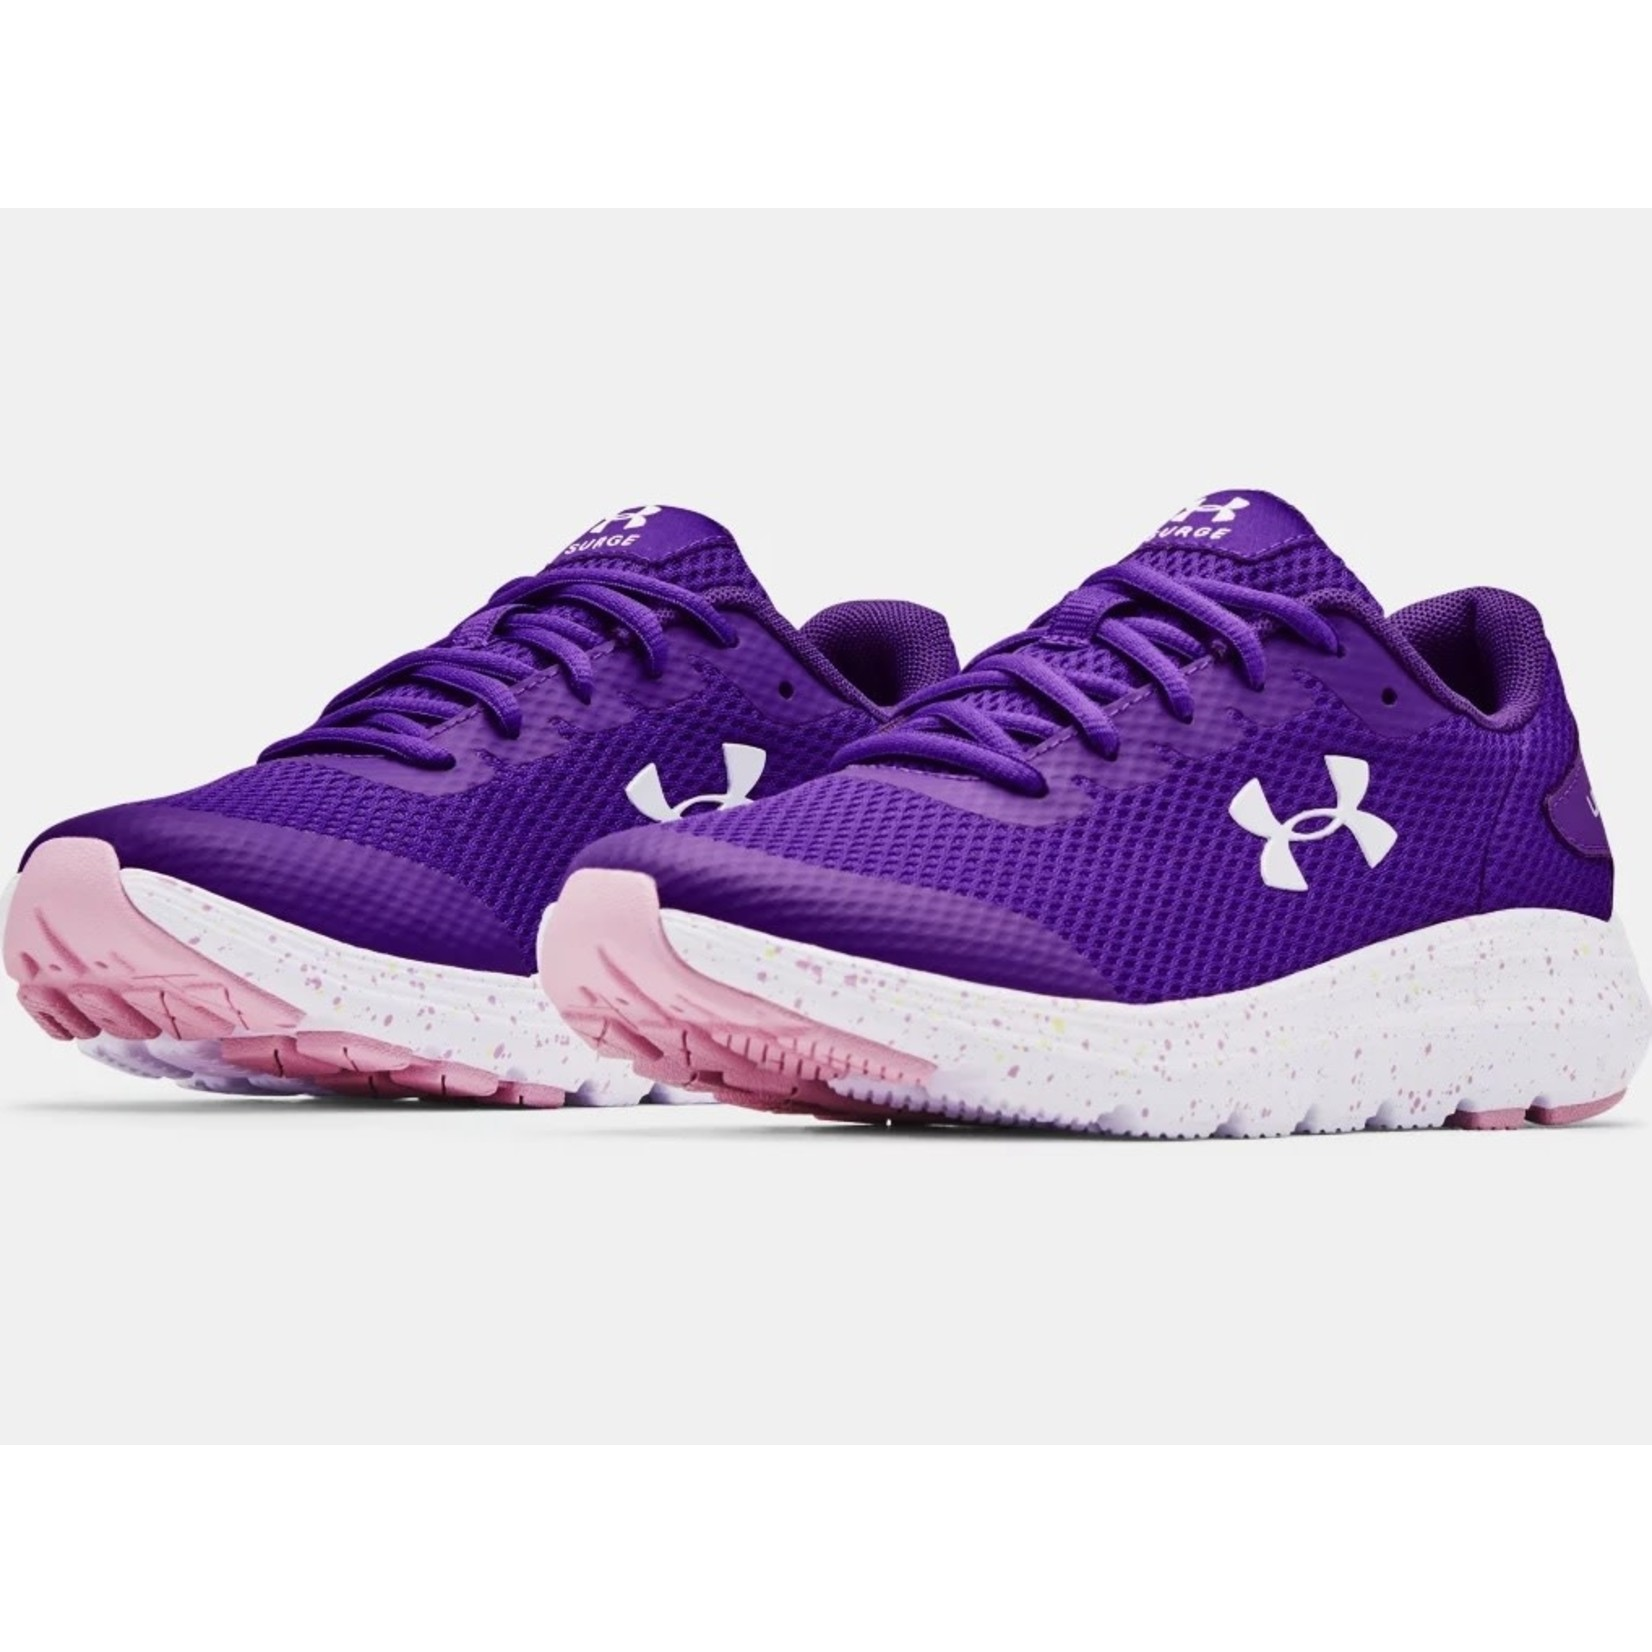 Under Armour Under Armour Running Shoes, Surge 2 Fade, GGS, Girls